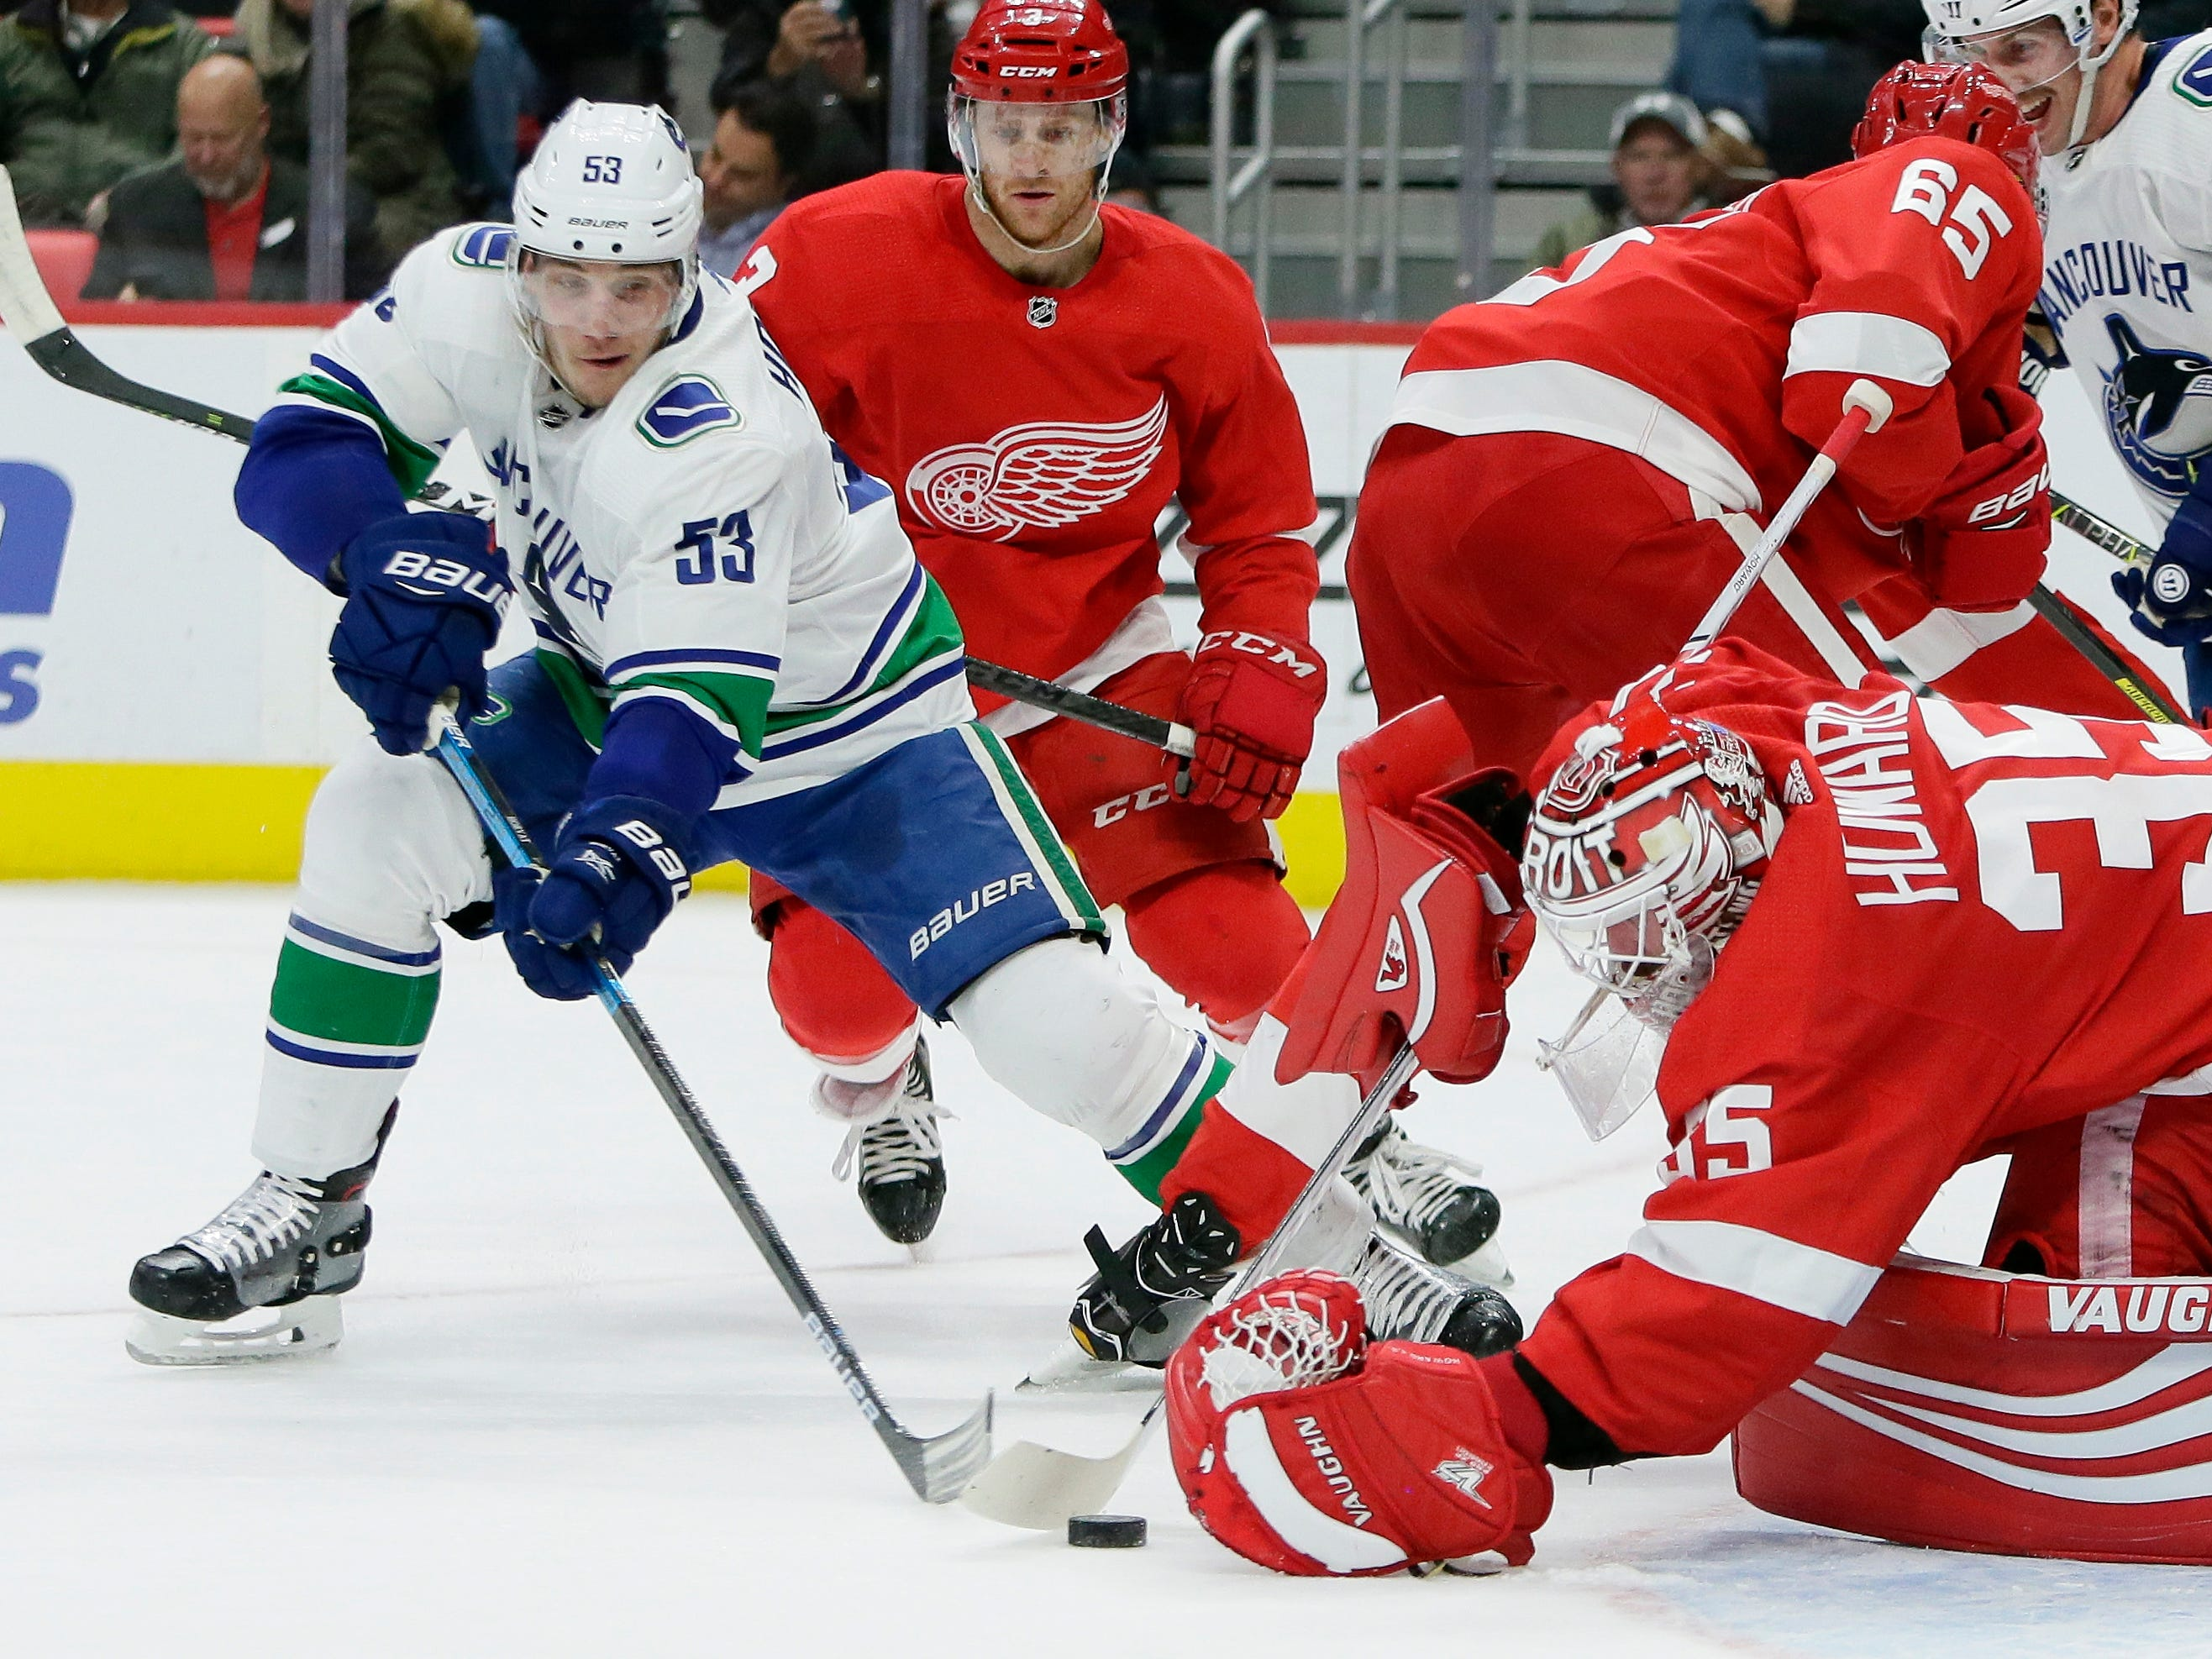 Detroit Red Wings goaltender Jimmy Howard (35) stops a shot by Vancouver Canucks center Bo Horvat (53) during the first period of an NHL hockey game Tuesday, Nov. 6, 2018, in Detroit.